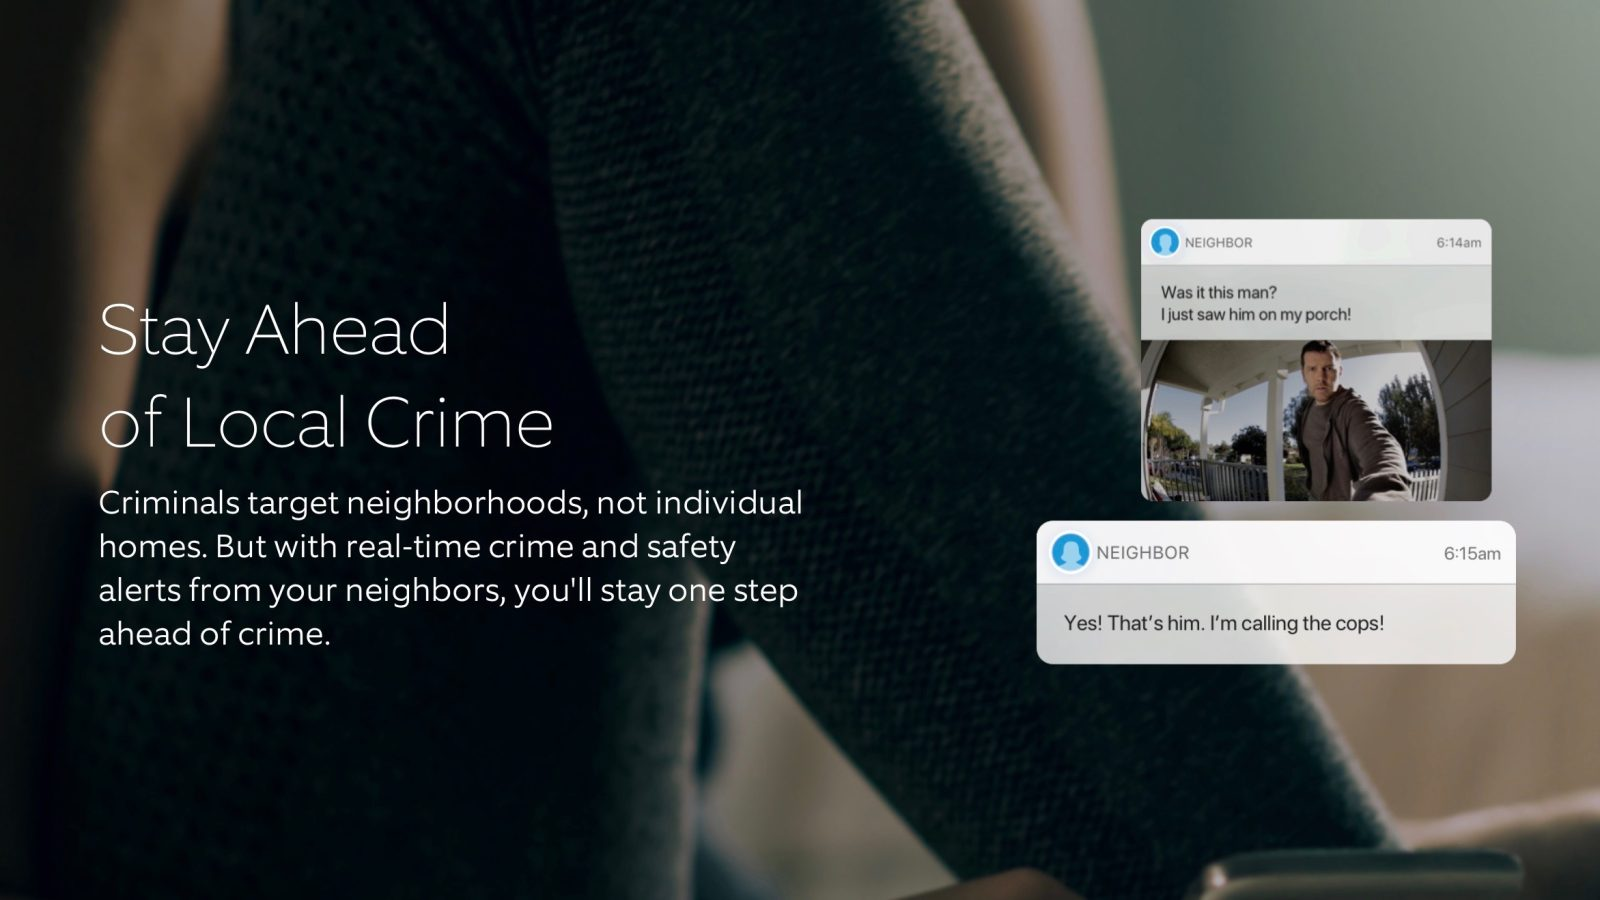 Ring expands real-time safety and crime alerts from